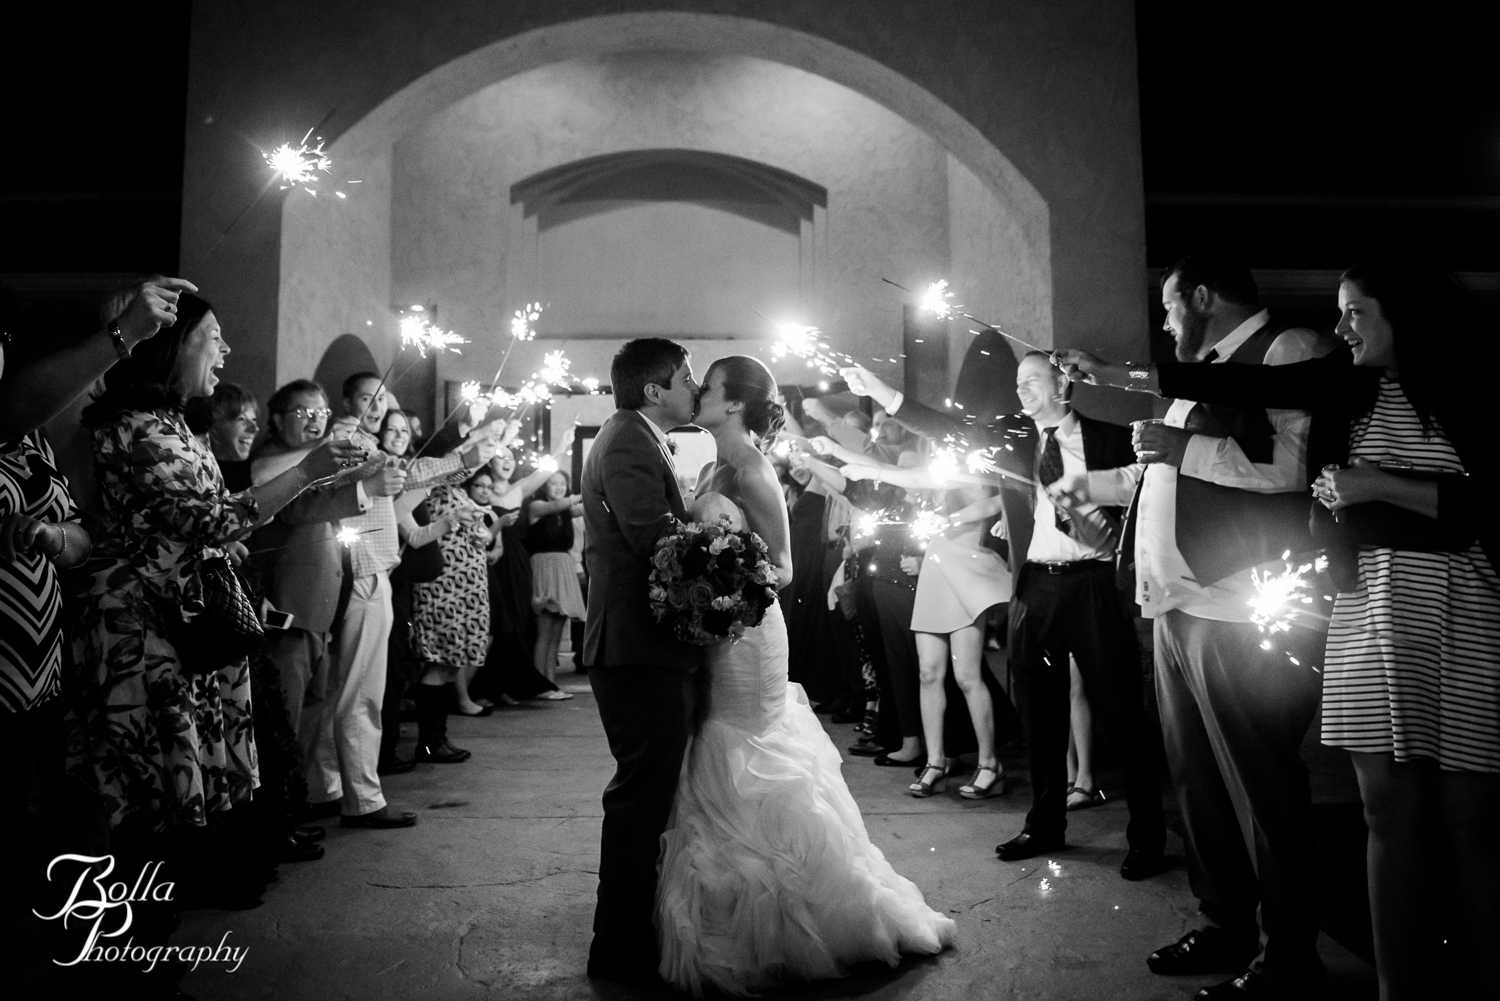 Bolla_Photography_St_Louis_wedding_photographer_Villa_Maire_Winery-0612.jpg